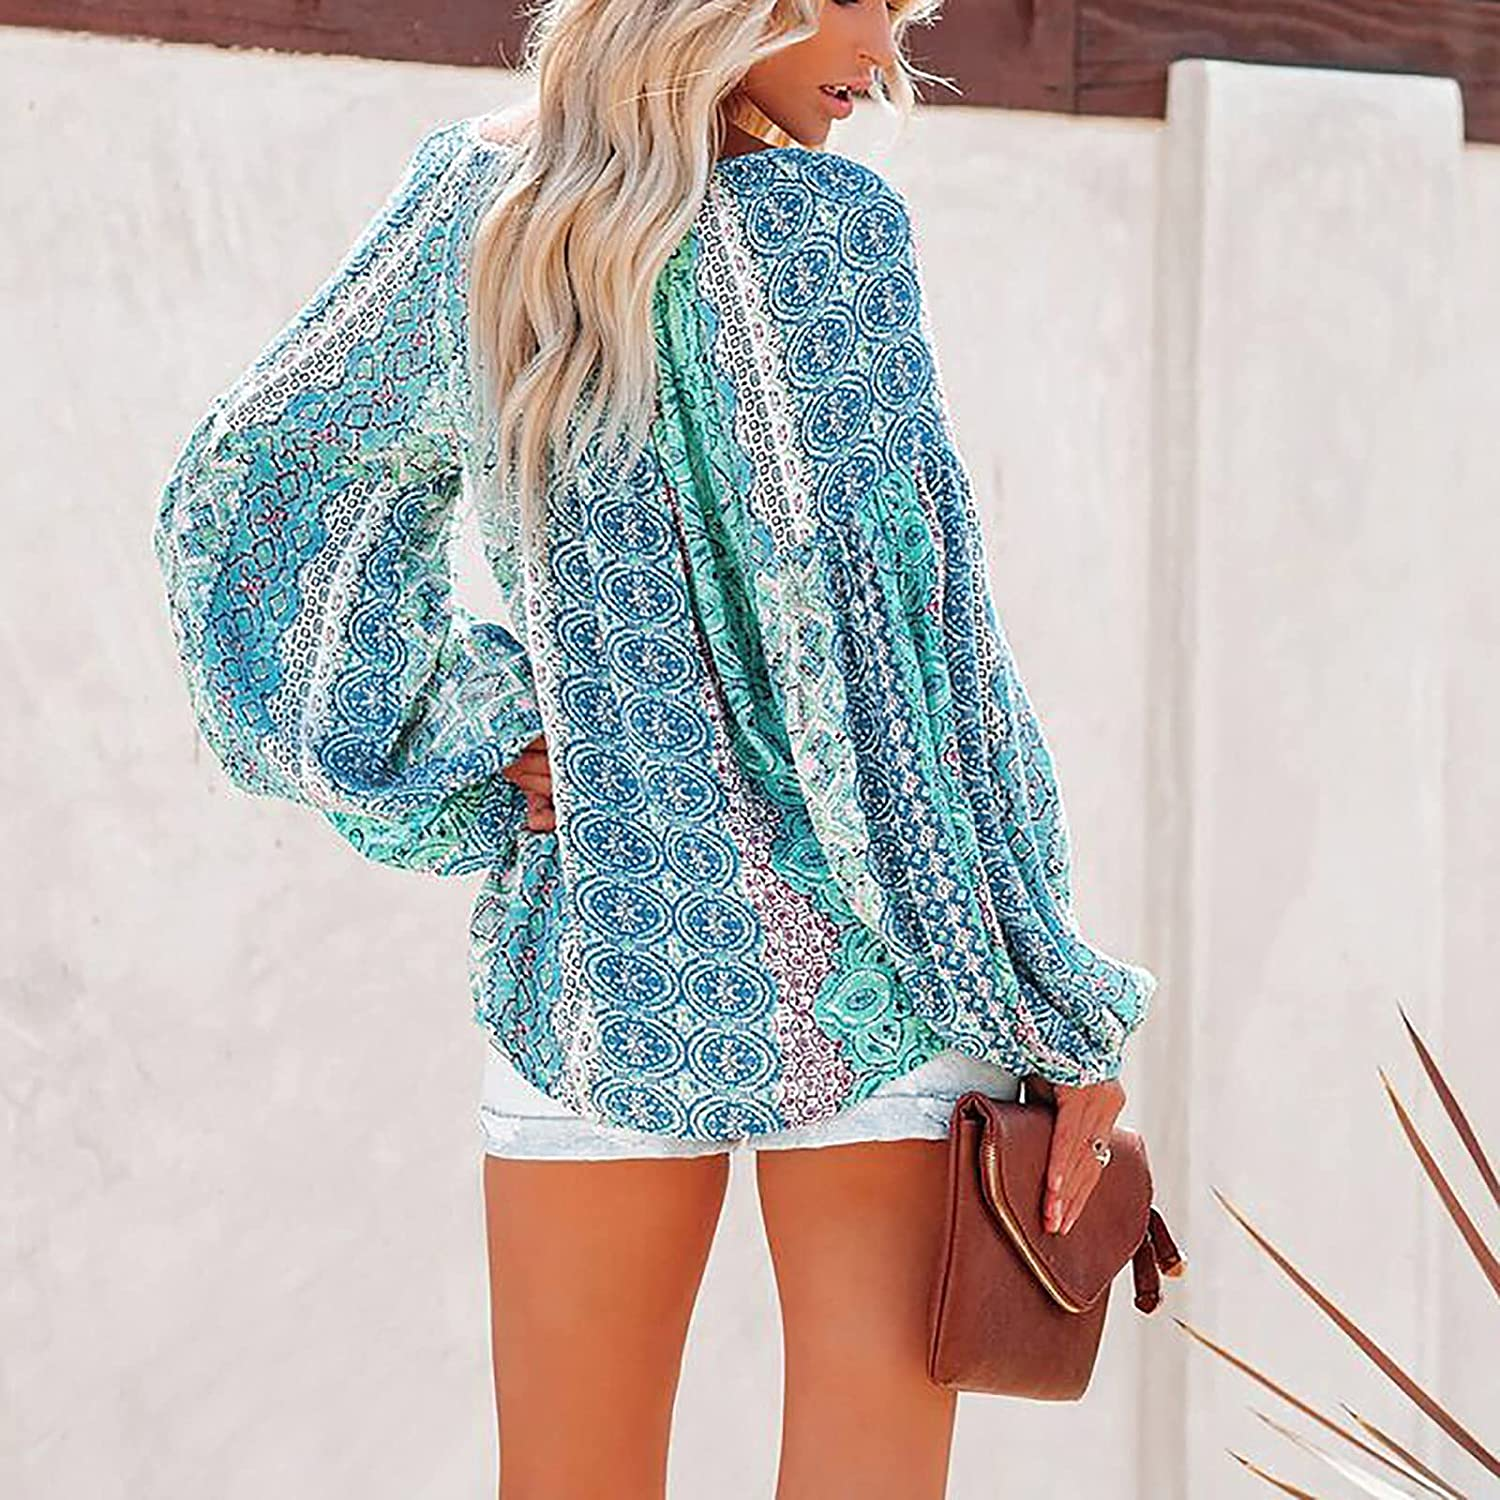 Women Tops Loose Fit V-Neck Vintage Lantern Long Sleeve Blouse Casual Shirt Sweater Plus Size Tunic Tees Pullover